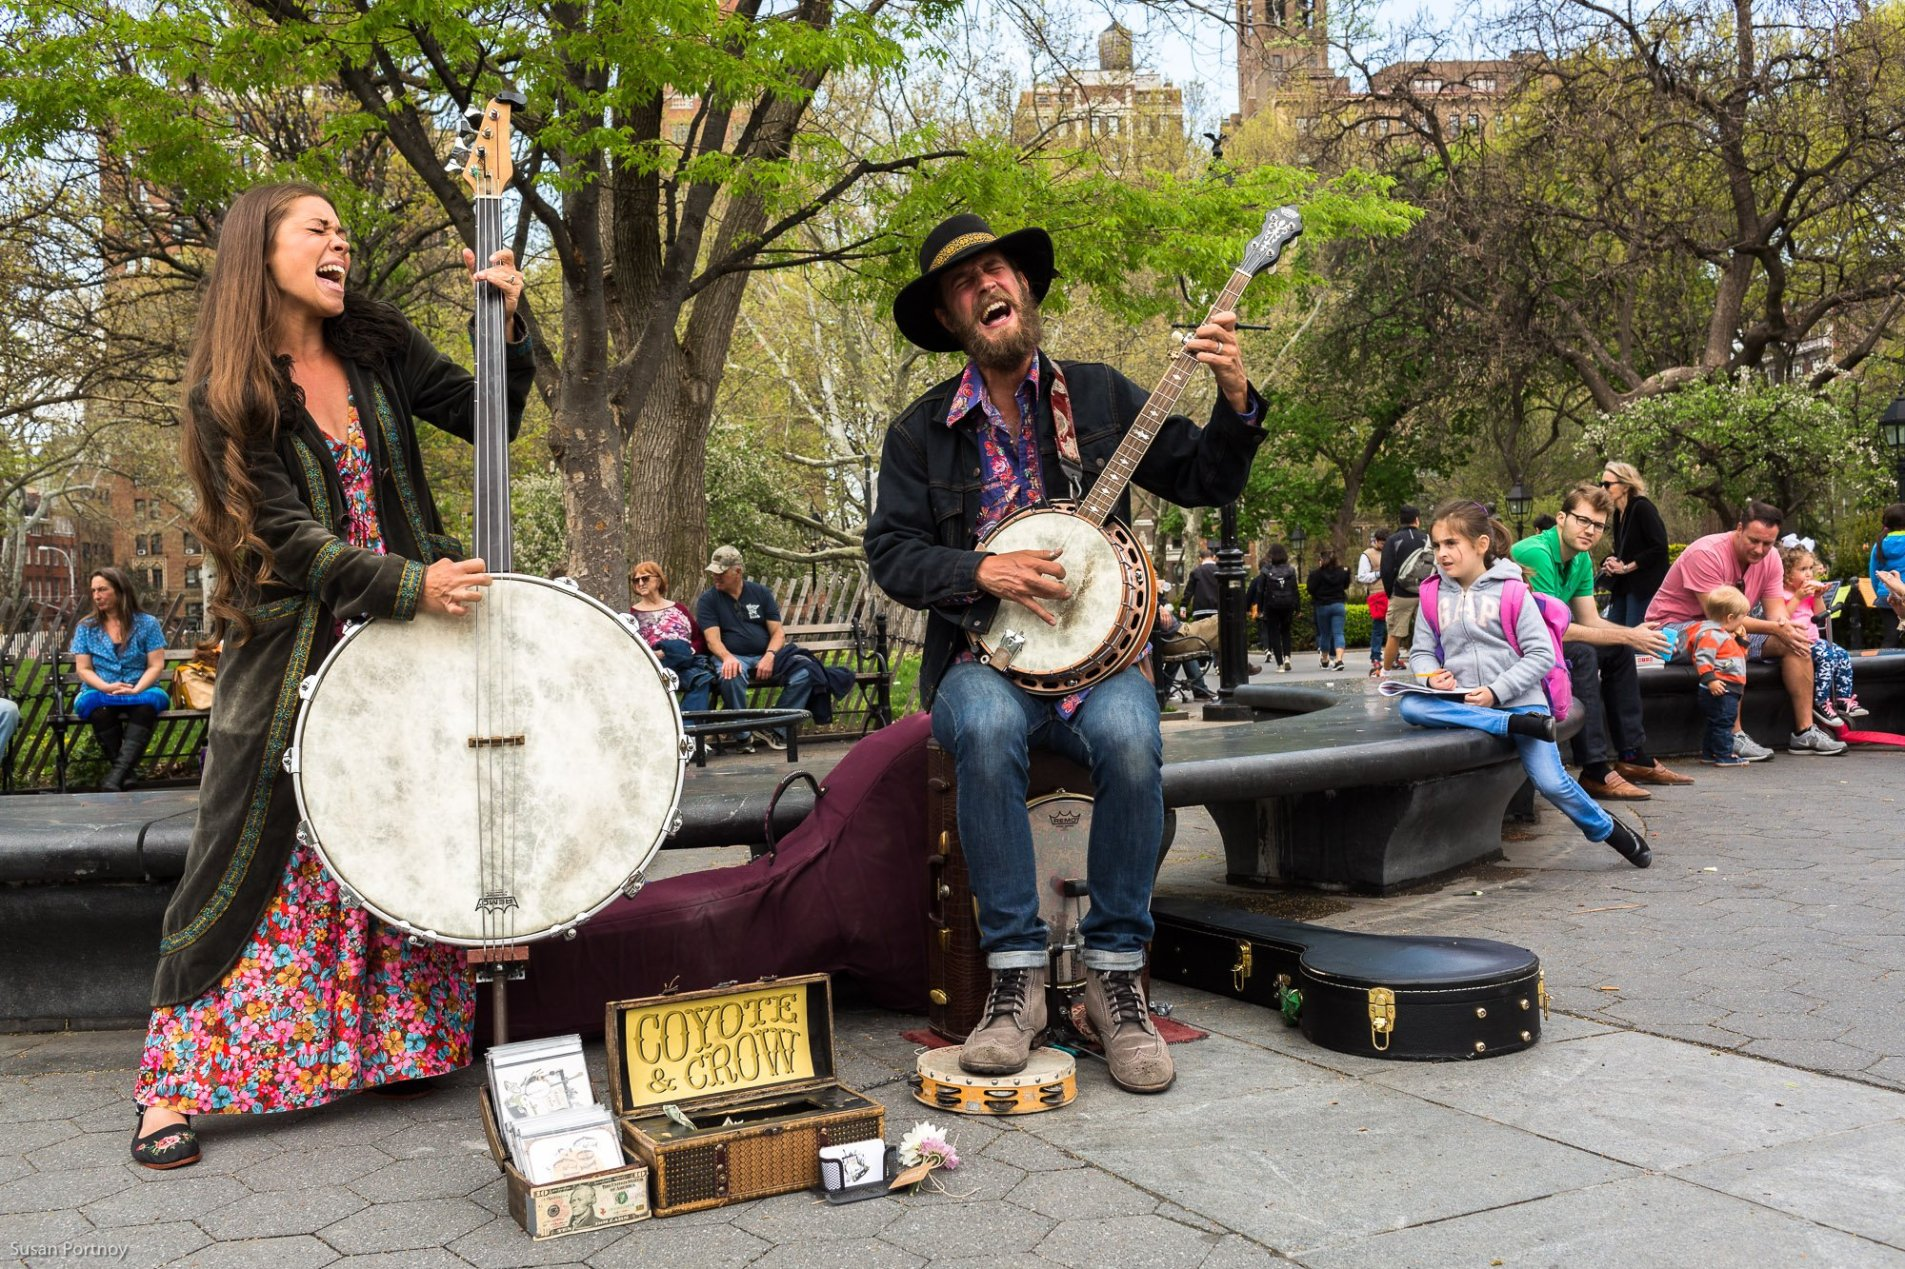 Coyote_and_Crow_playing in Washington Square Park